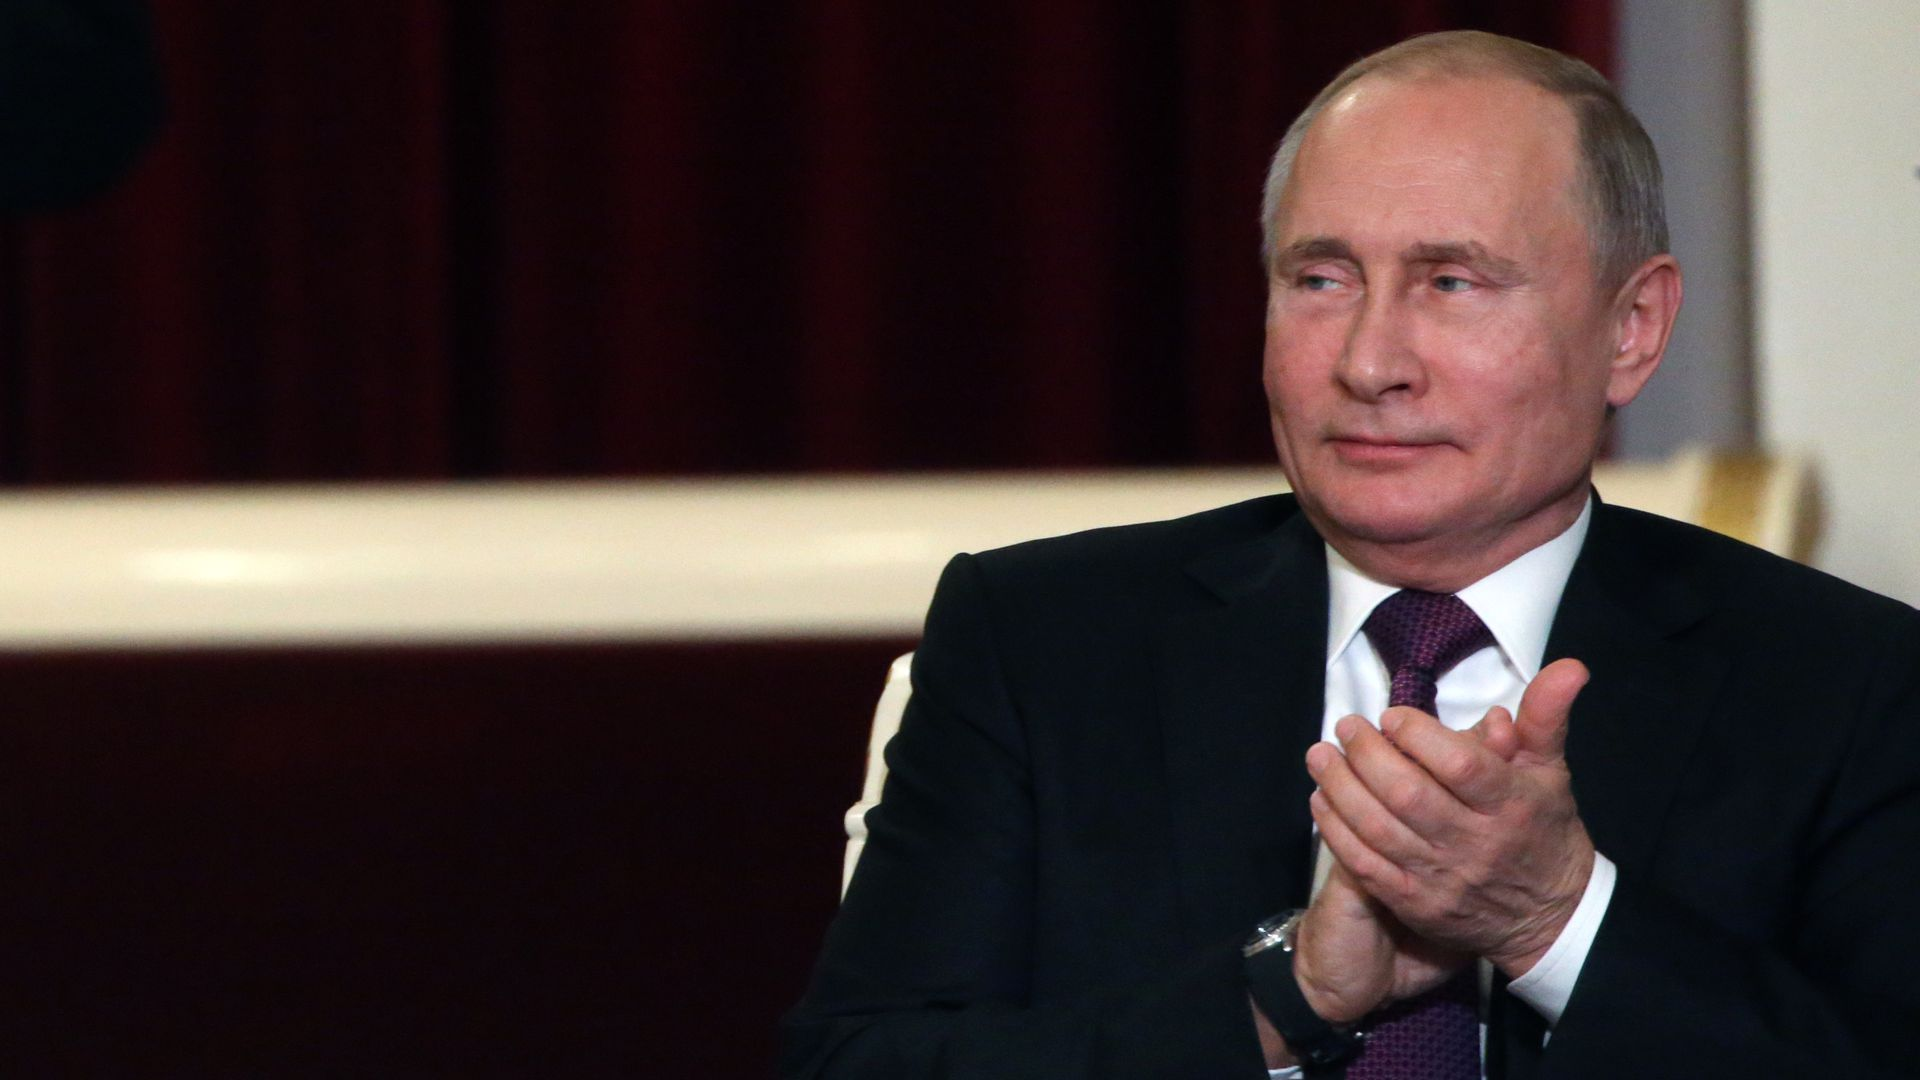 Vladimir Putin glances to his right while clapping his hands together